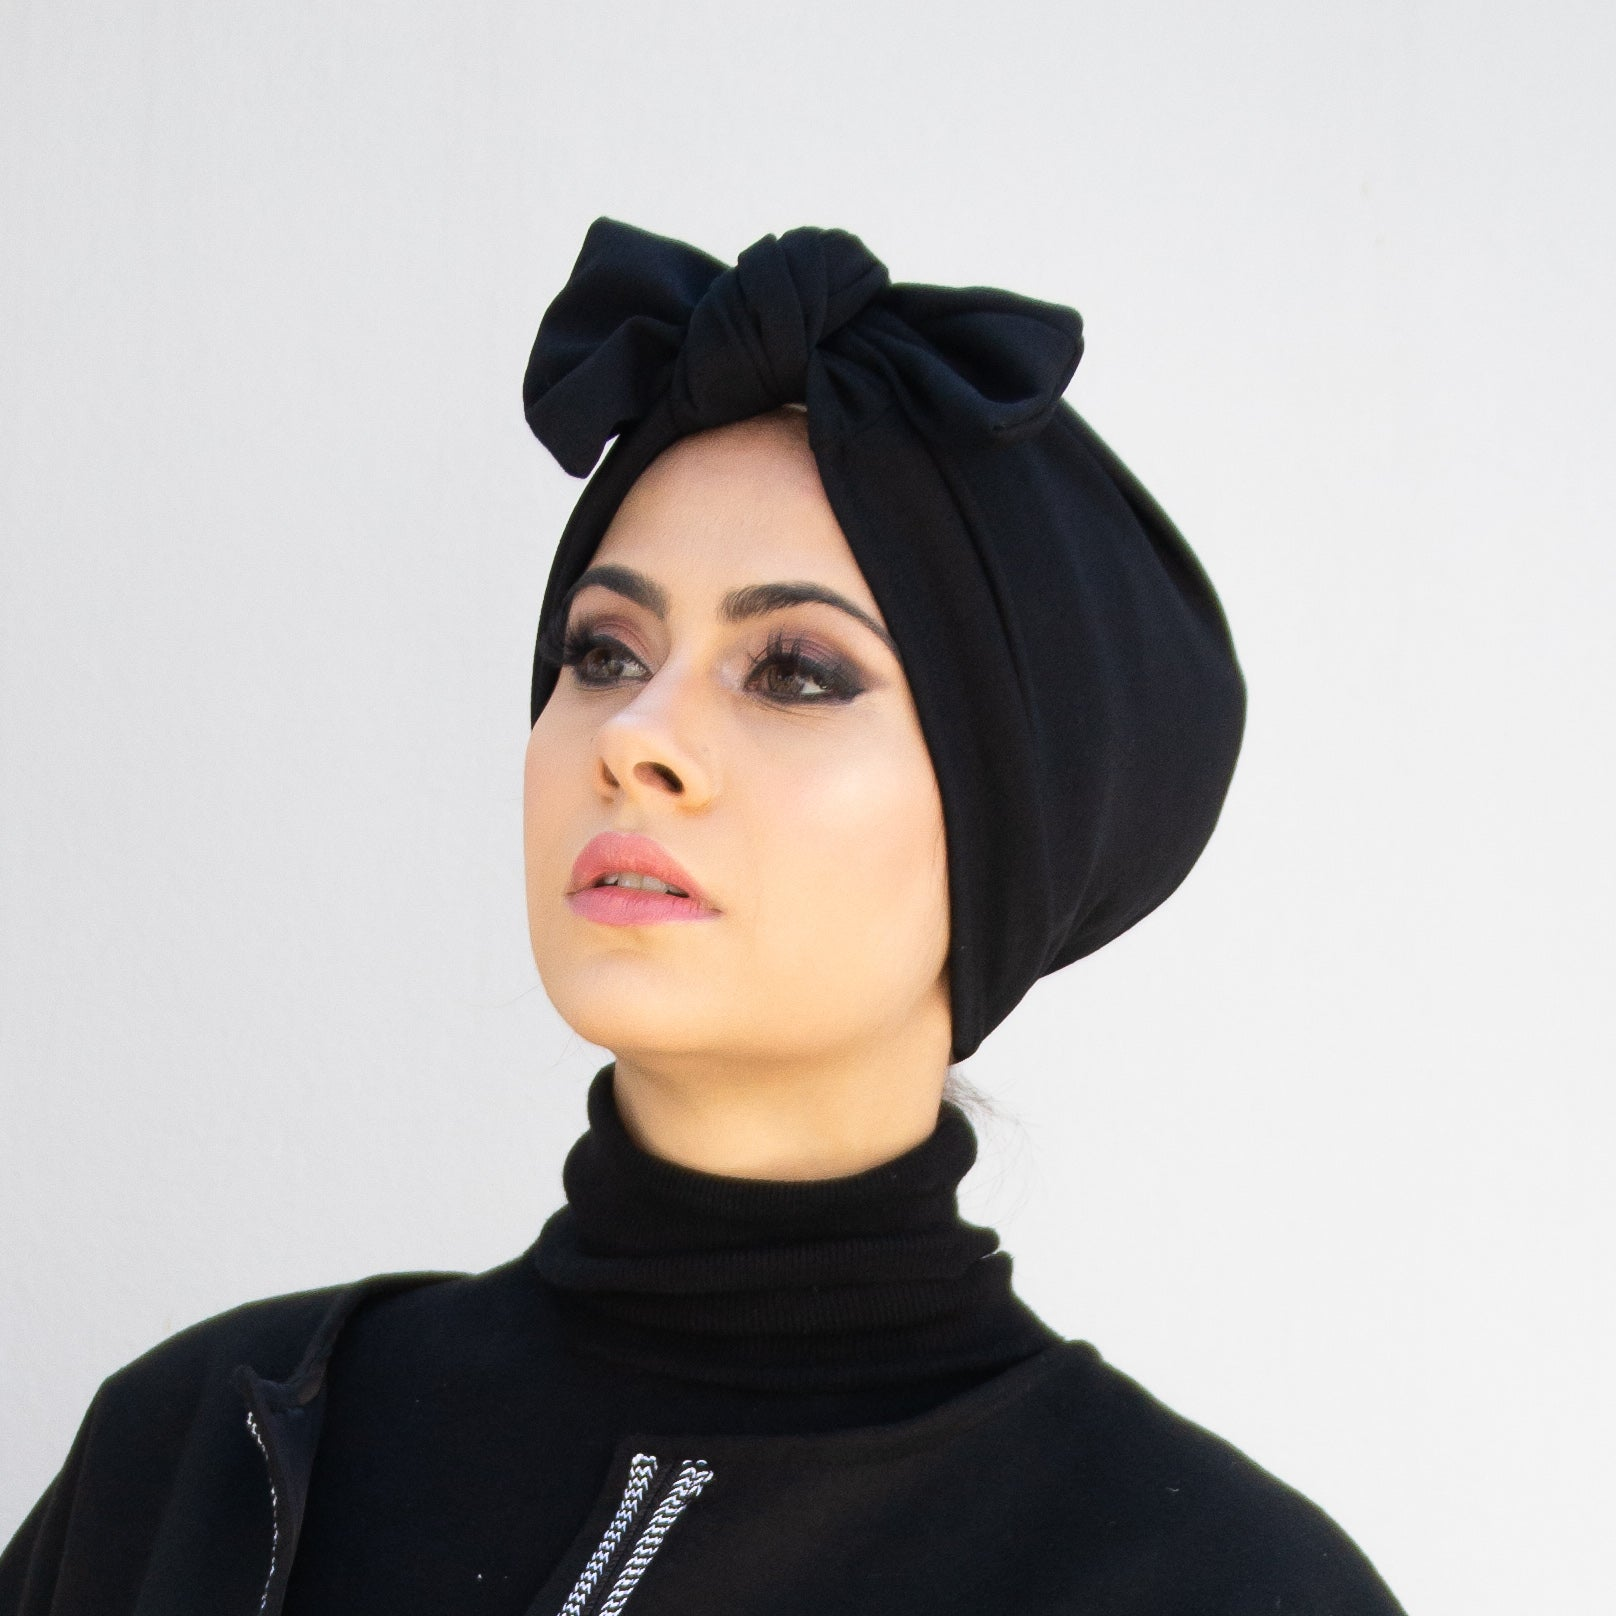 Sequin Pull-on Turban with bow